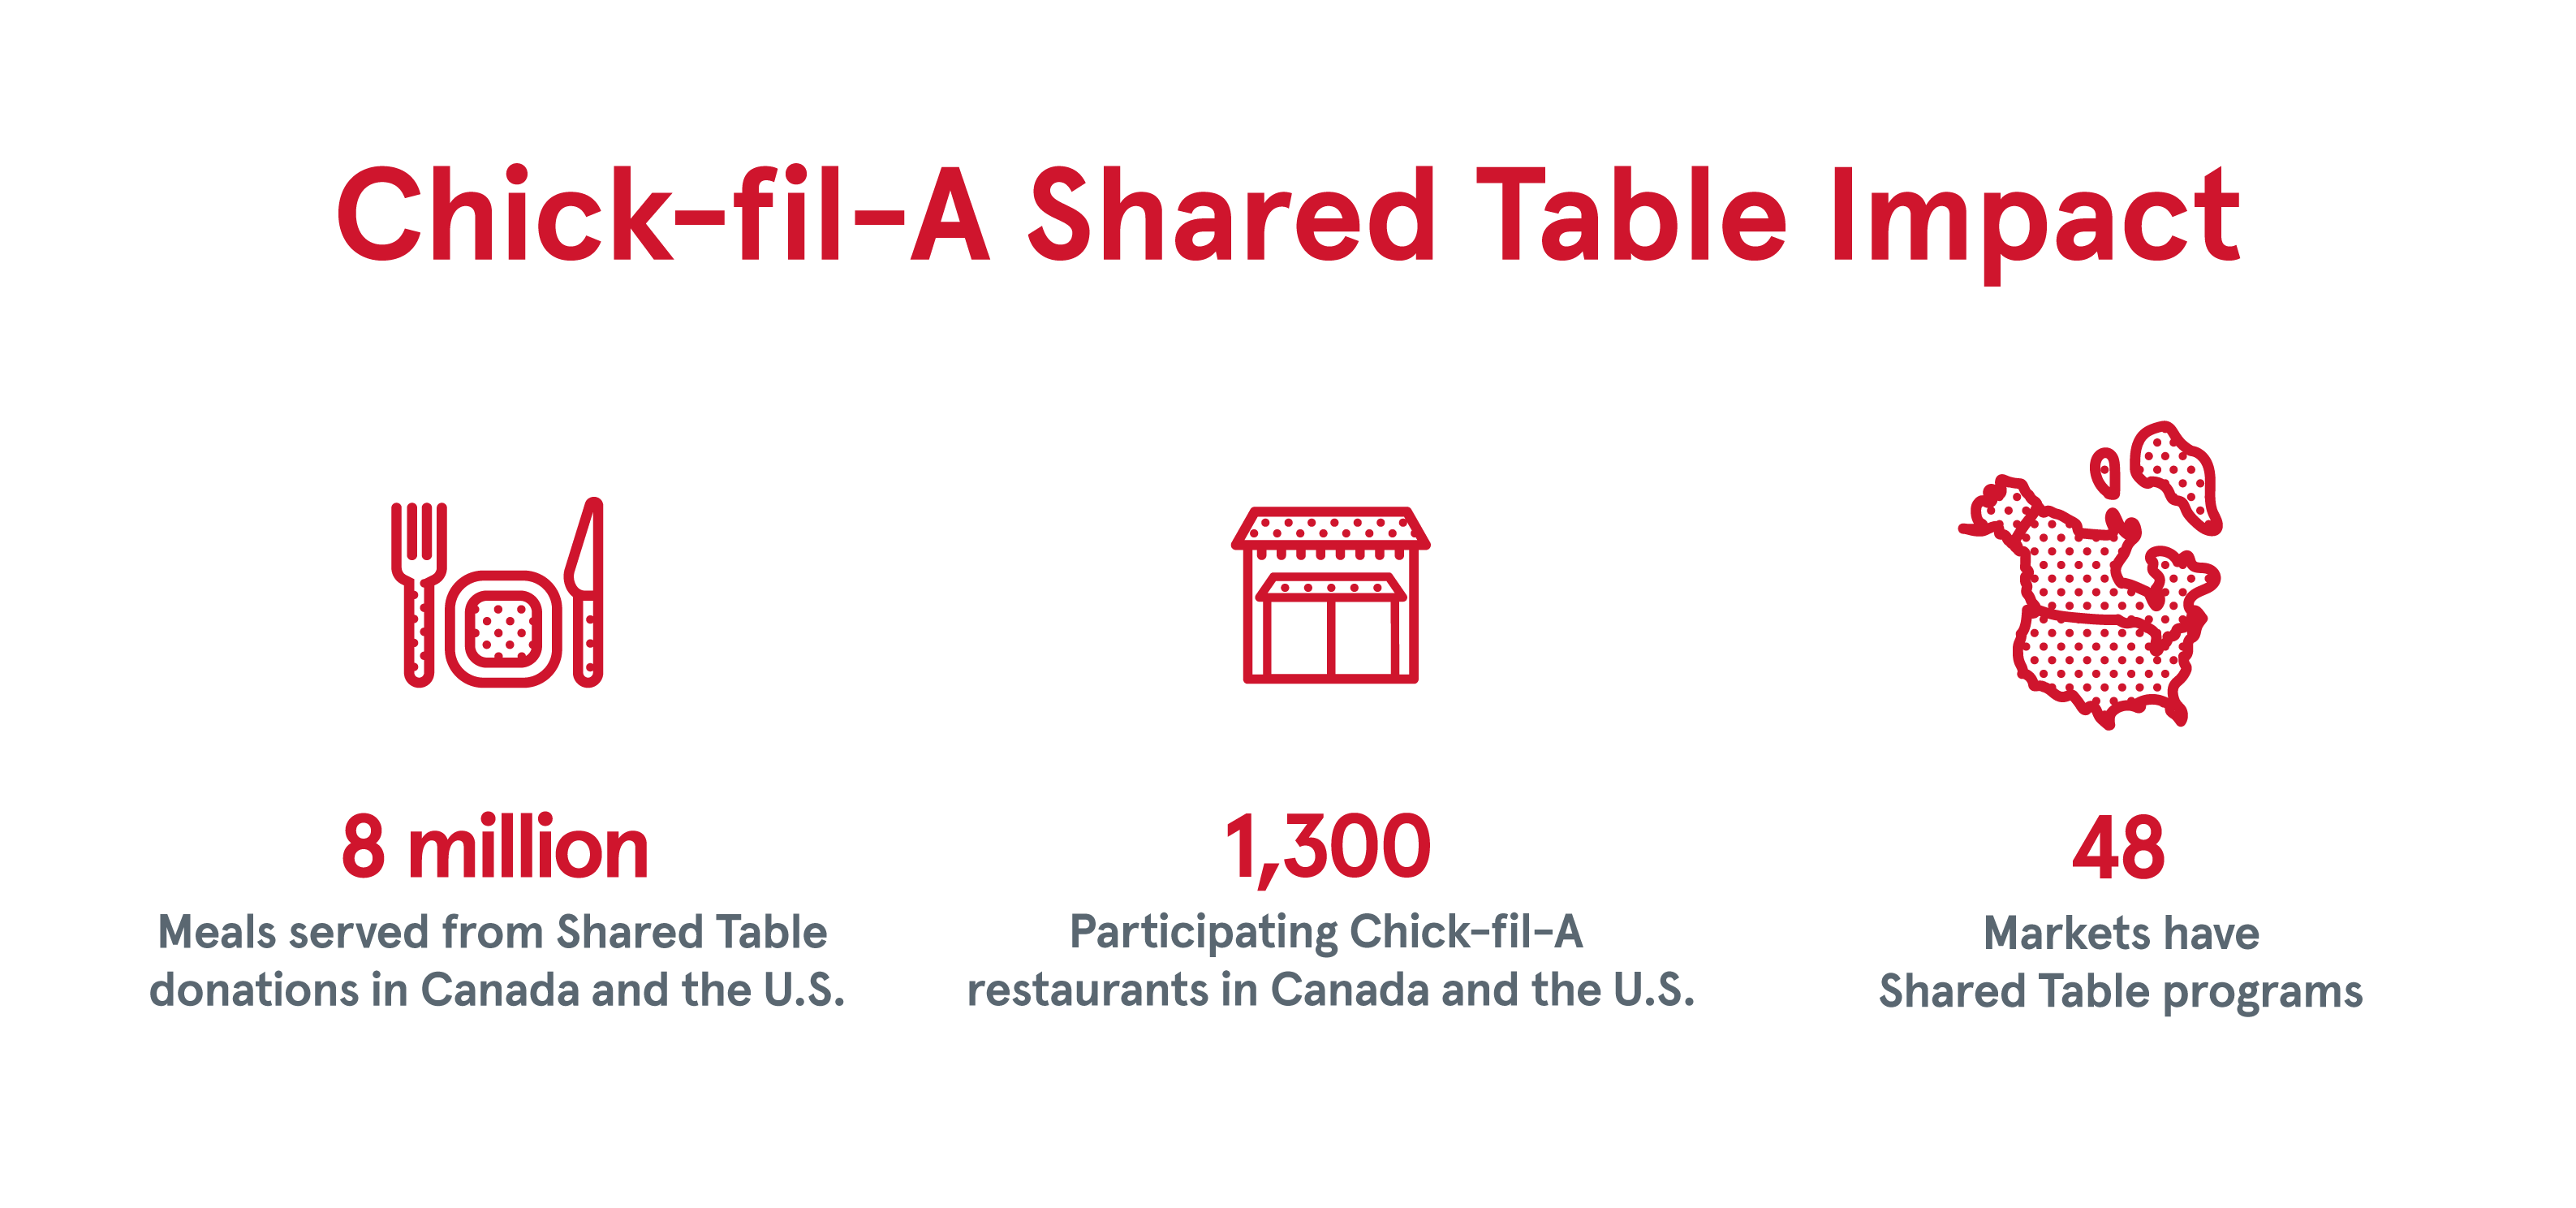 Chick-fil-A's Shared Table Impact